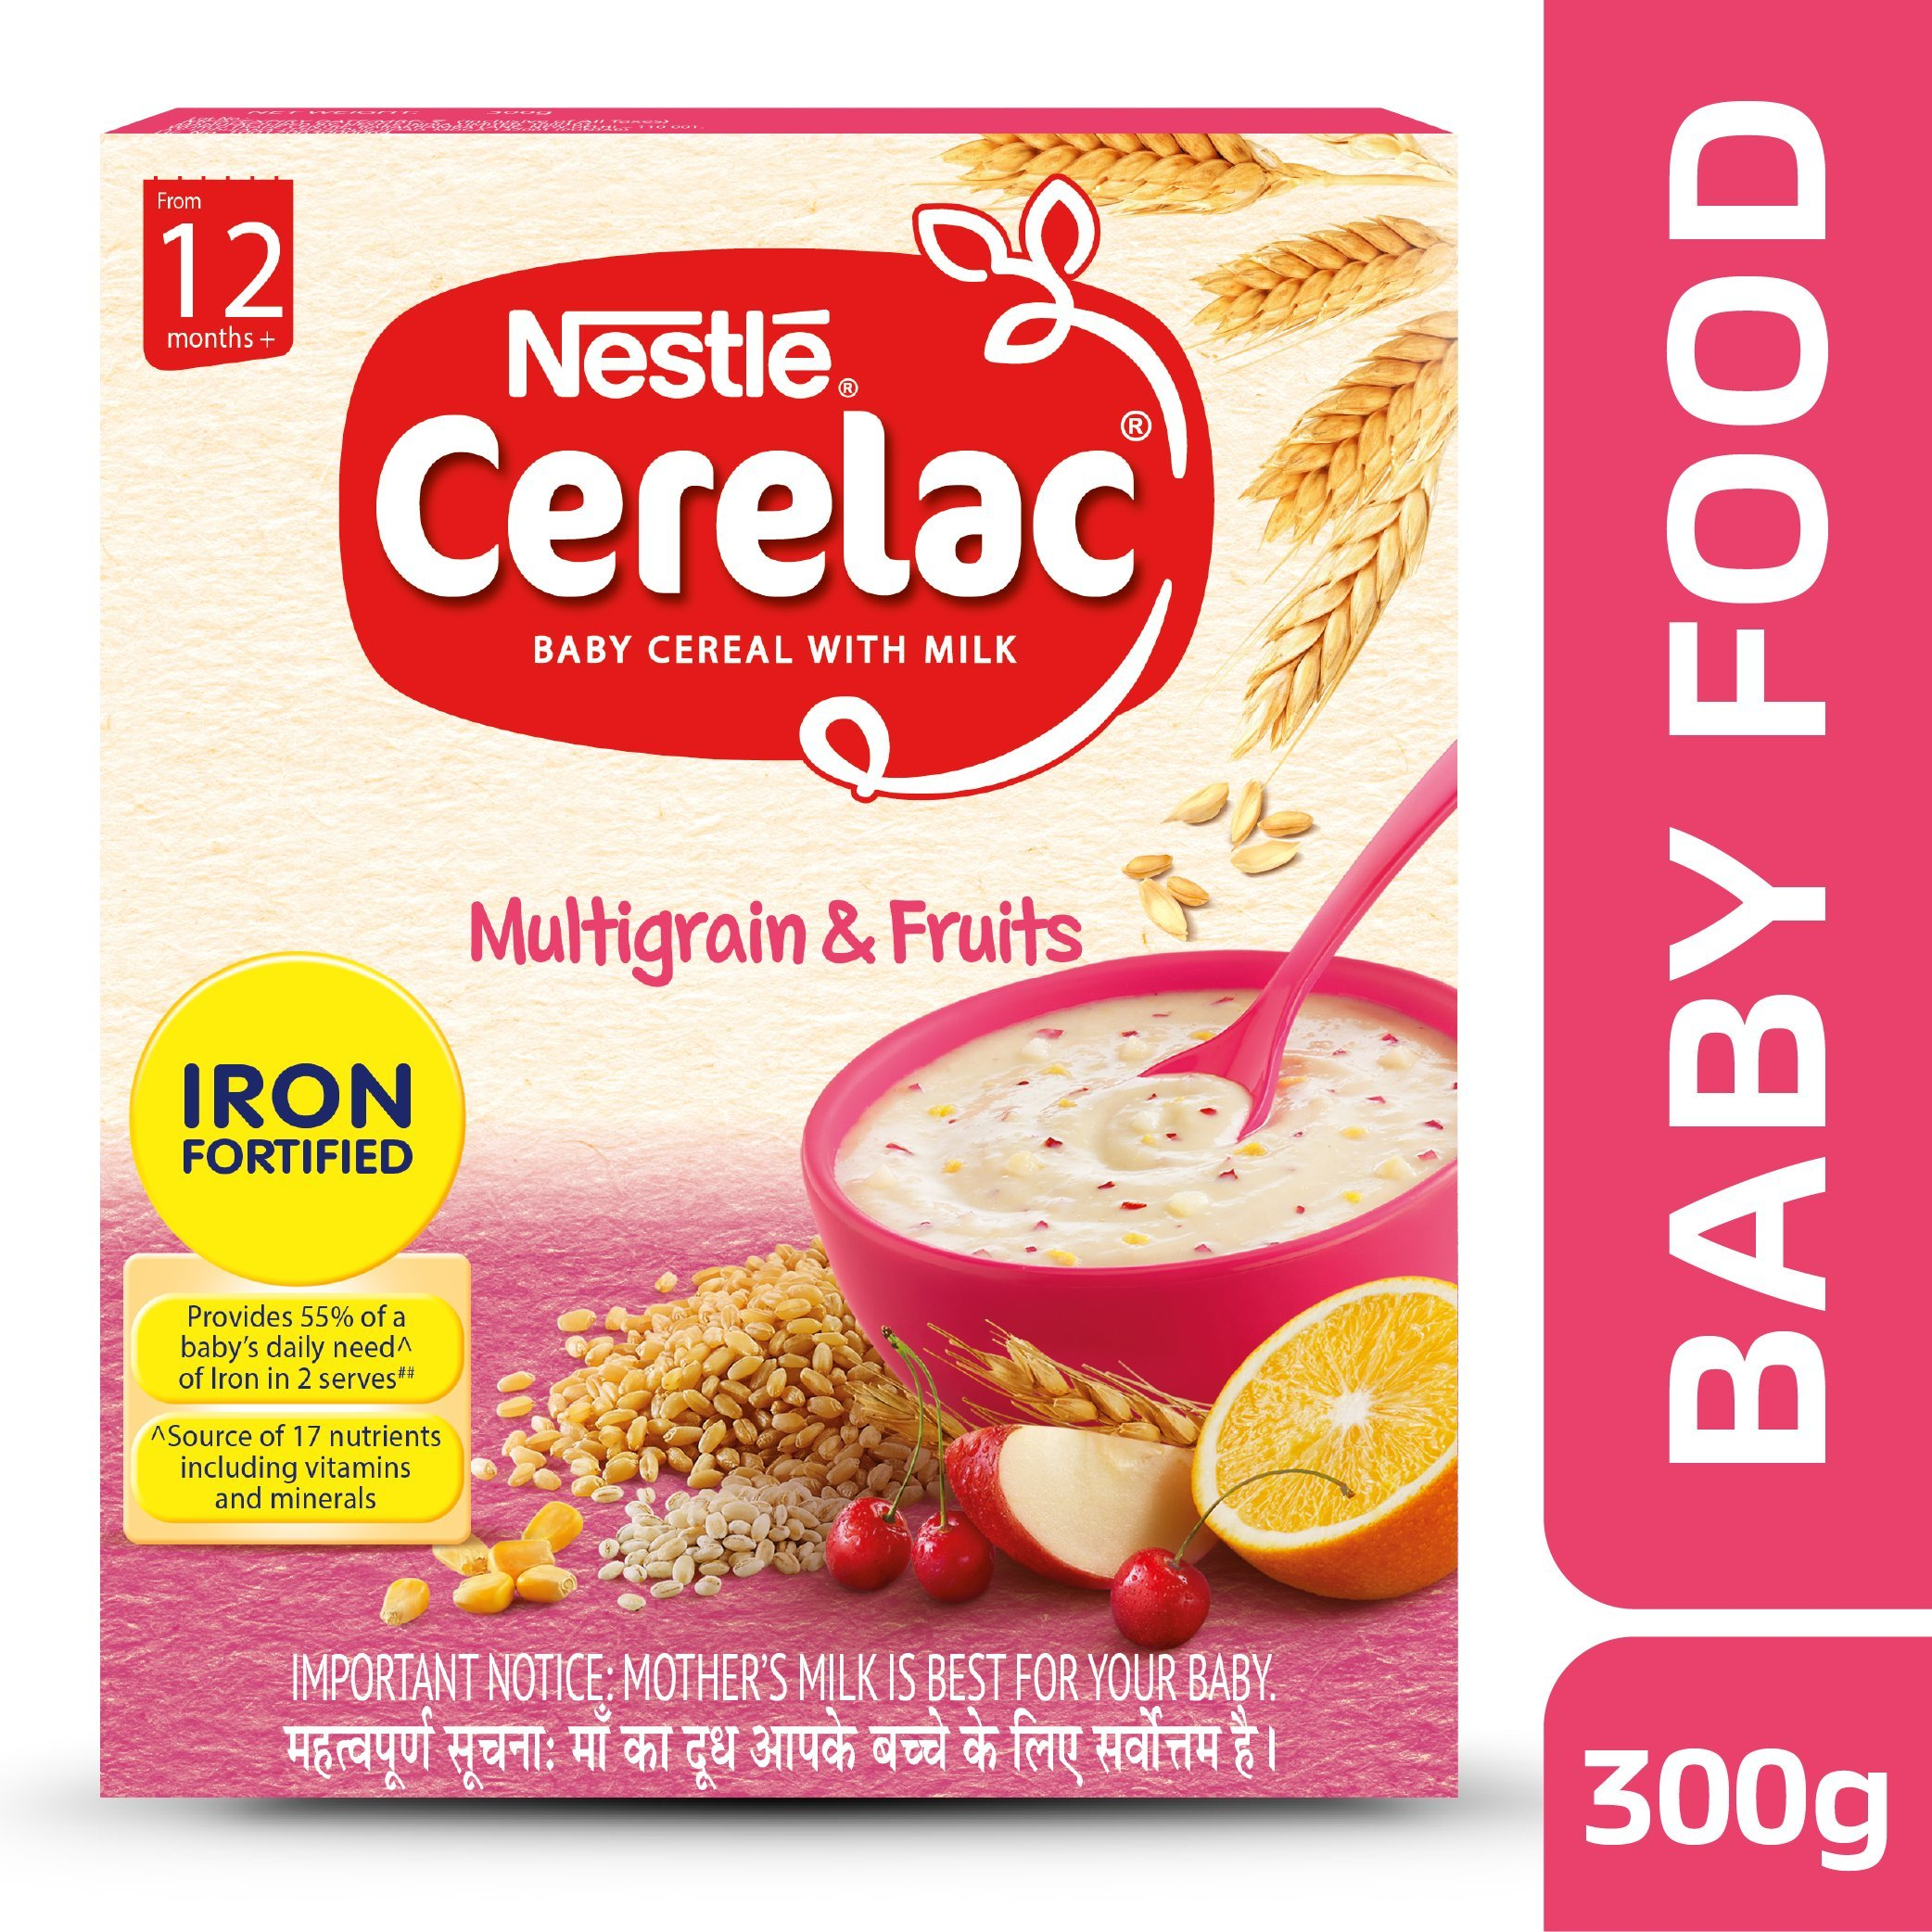 Nestle Cerelac Fortified Baby Cereal with Milk, Multigrain & Fruits – From 12 Months, 300g Pack product image